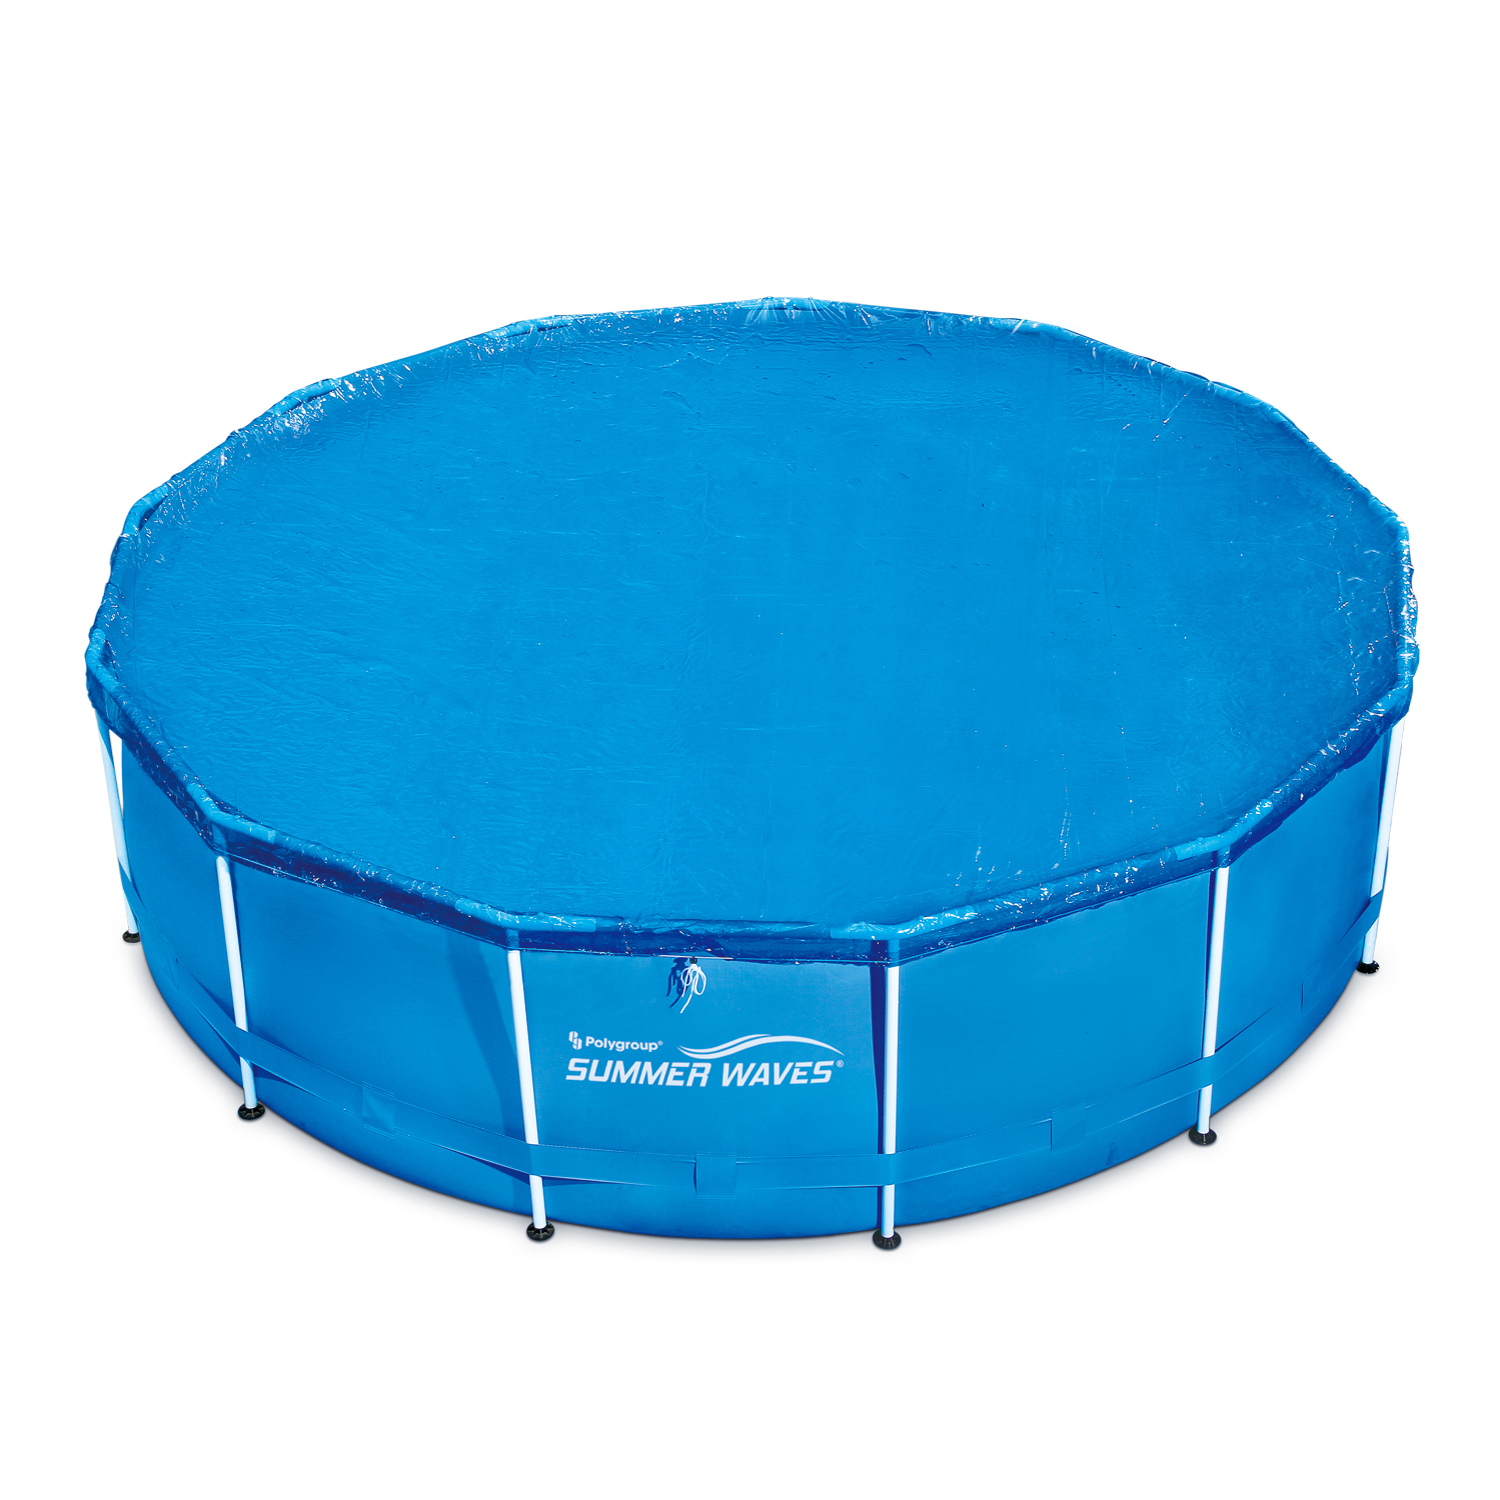 Summer Waves 10'-15' Adjustable Round Solar Pool Cover for Quick Set or Metal Frame Above Ground Swimming Pools